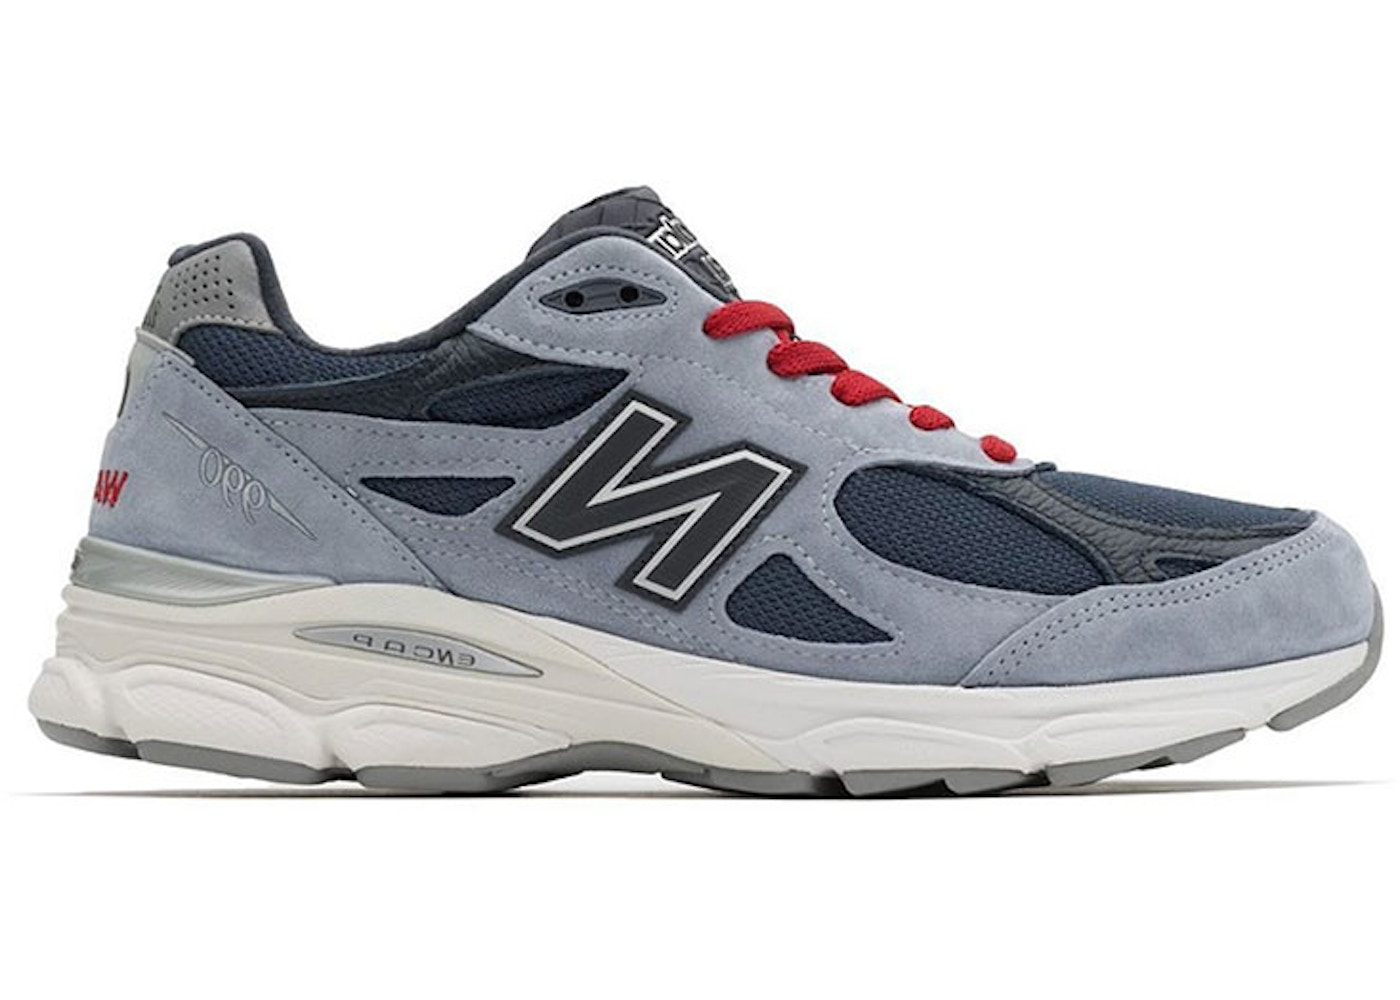 online retailer 88acb 90380 New Balance Footwear - Buy Deadstock Sneakers